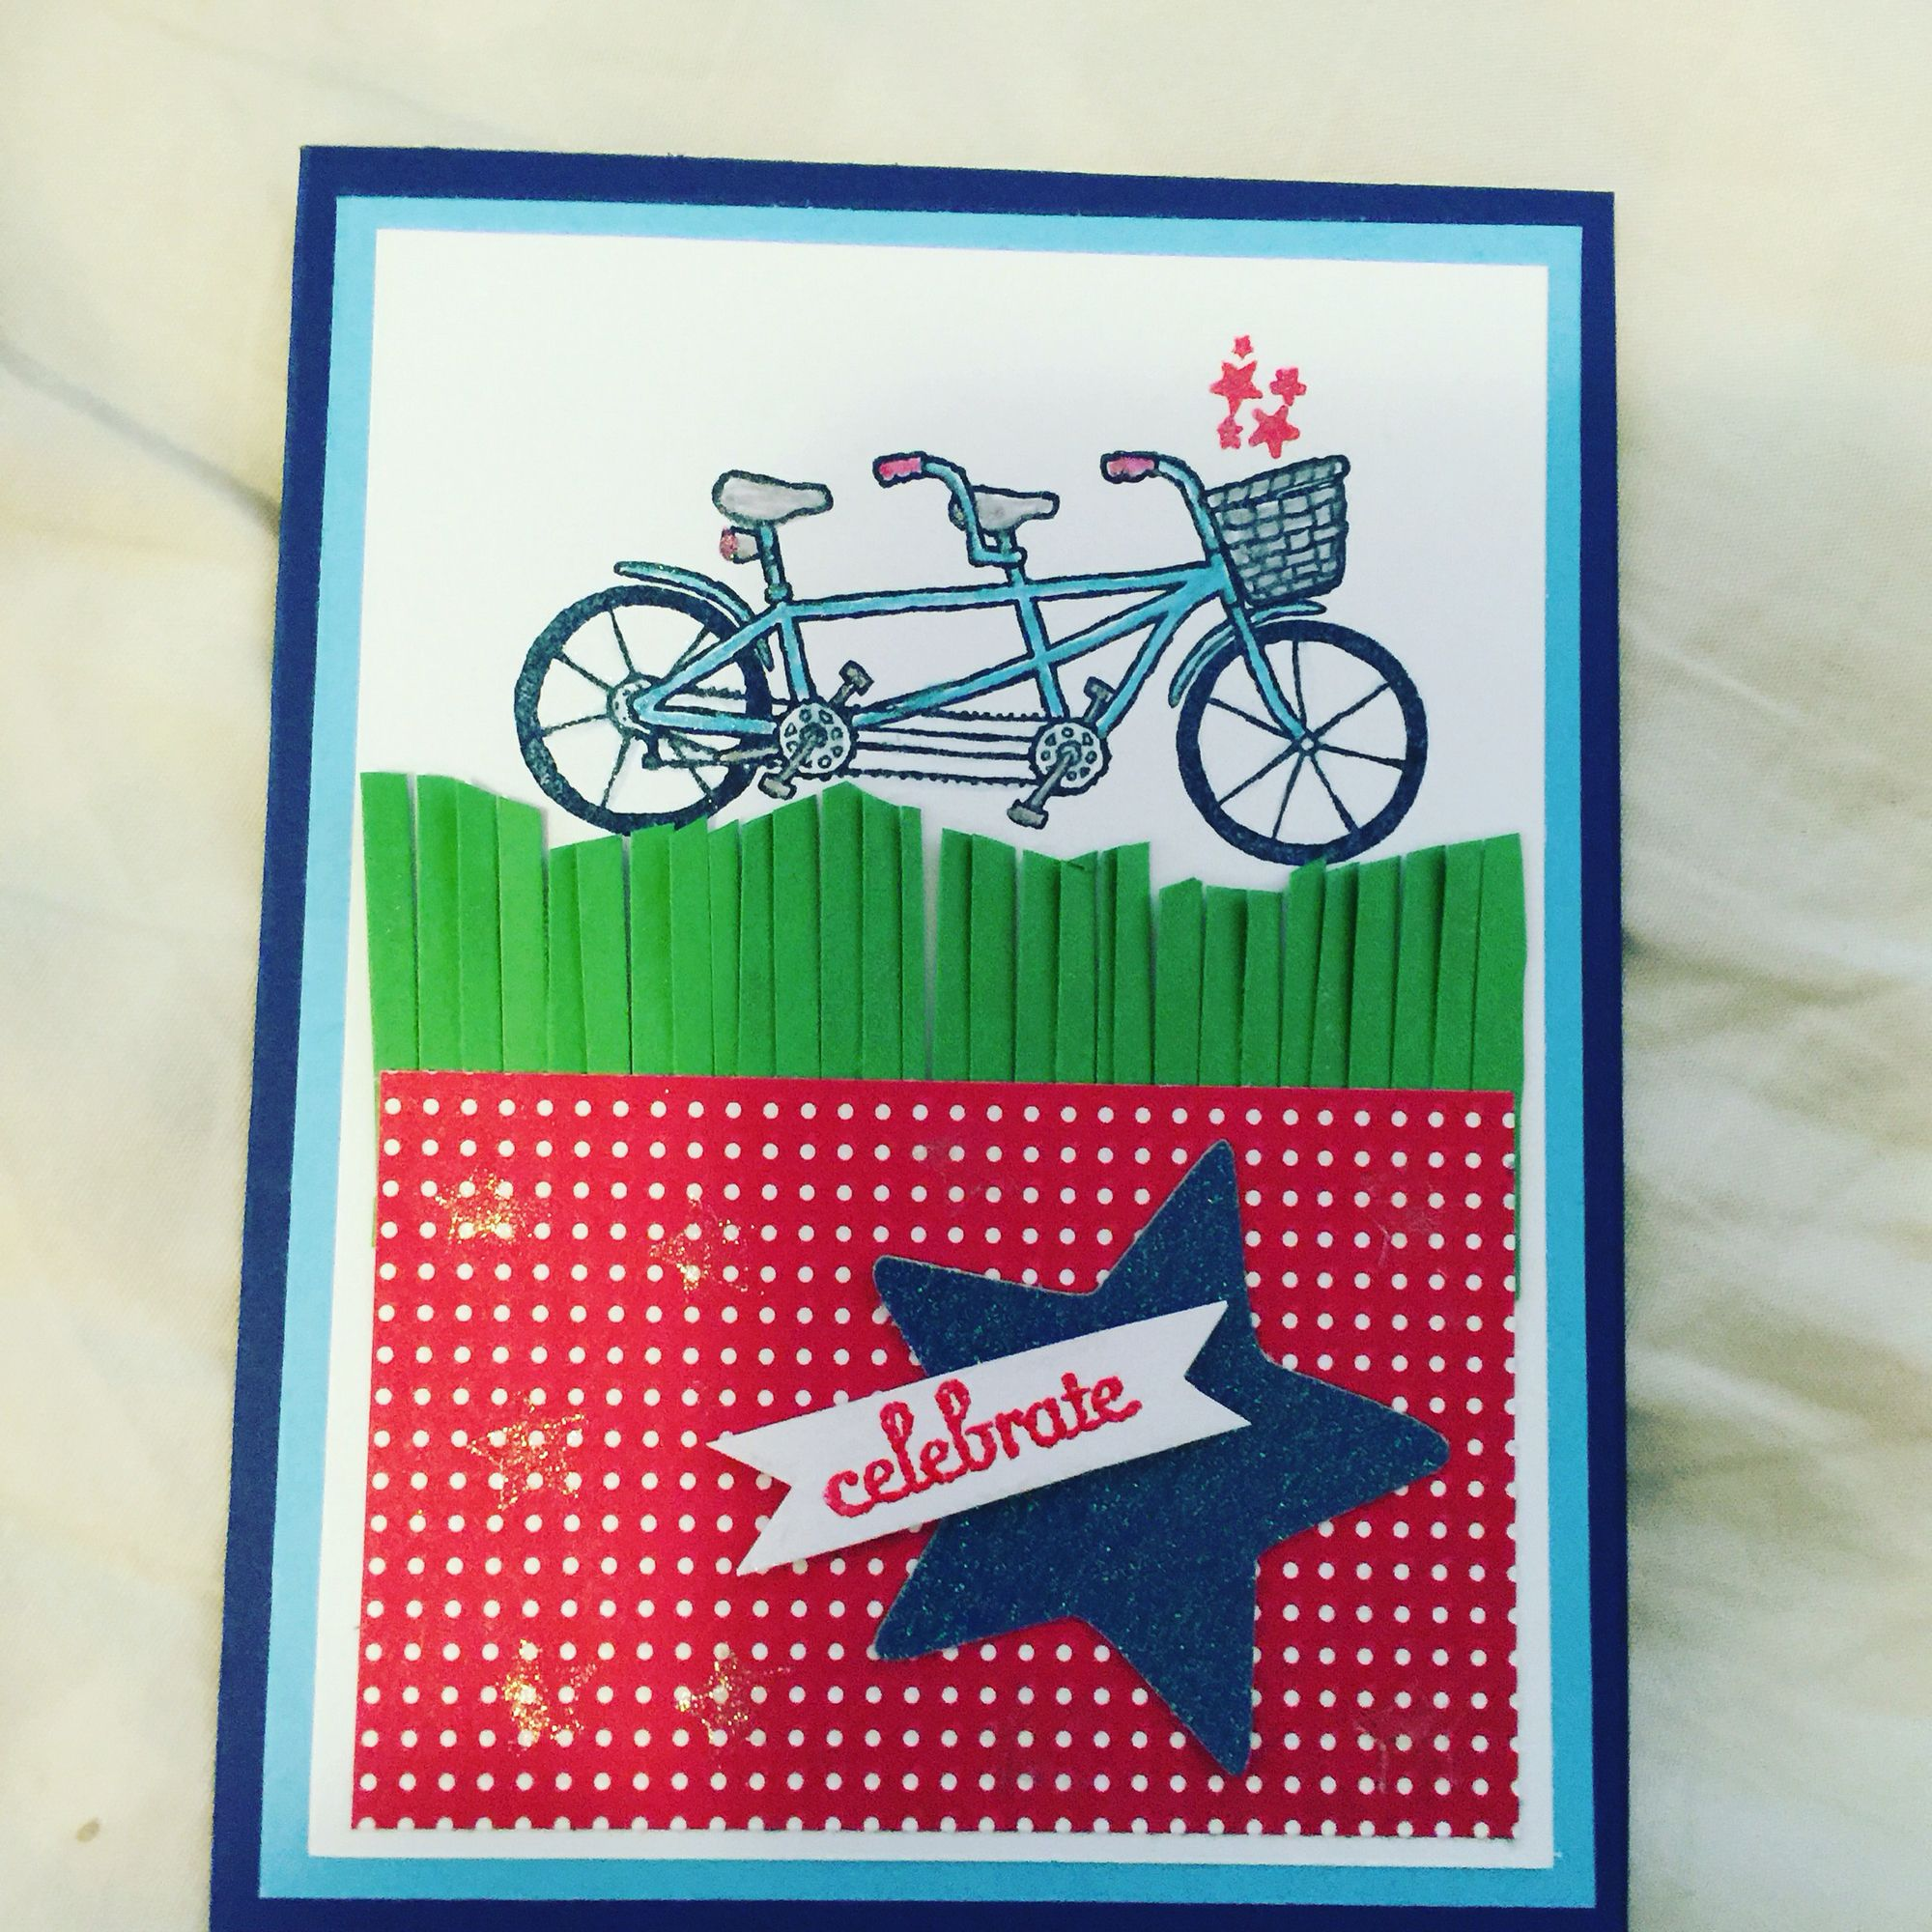 Fourth of July celebration bicycle card